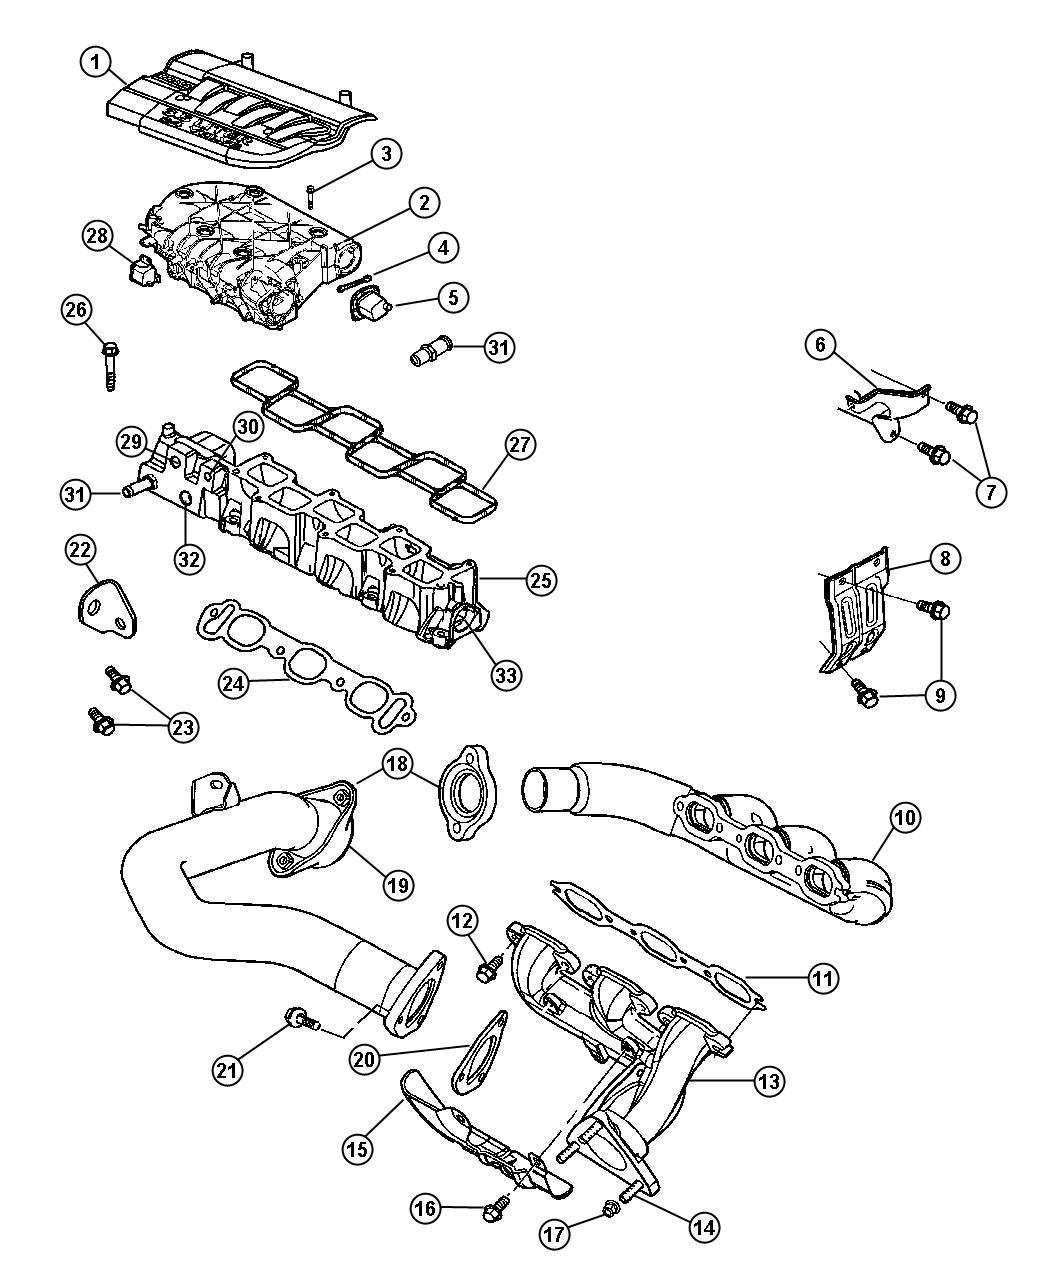 2005 Chrysler Pacifica Gasket. Exhaust manifold. Crossover